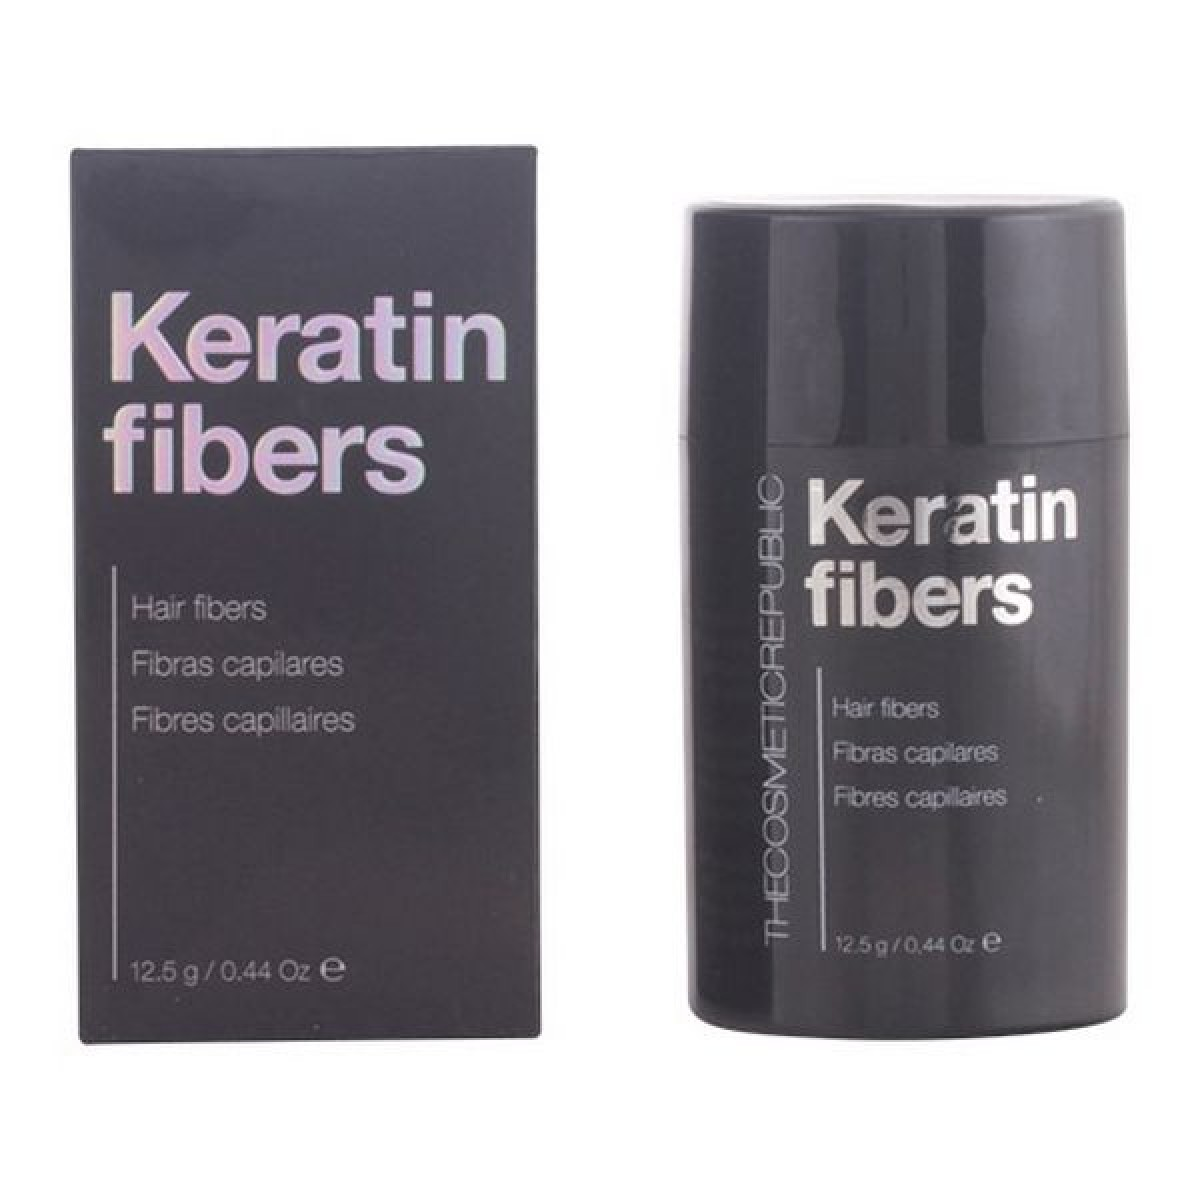 Anti-hårtab behandling Keratin Fibers The Cosmetic Republic - Farve: dark blond - 12,5 g